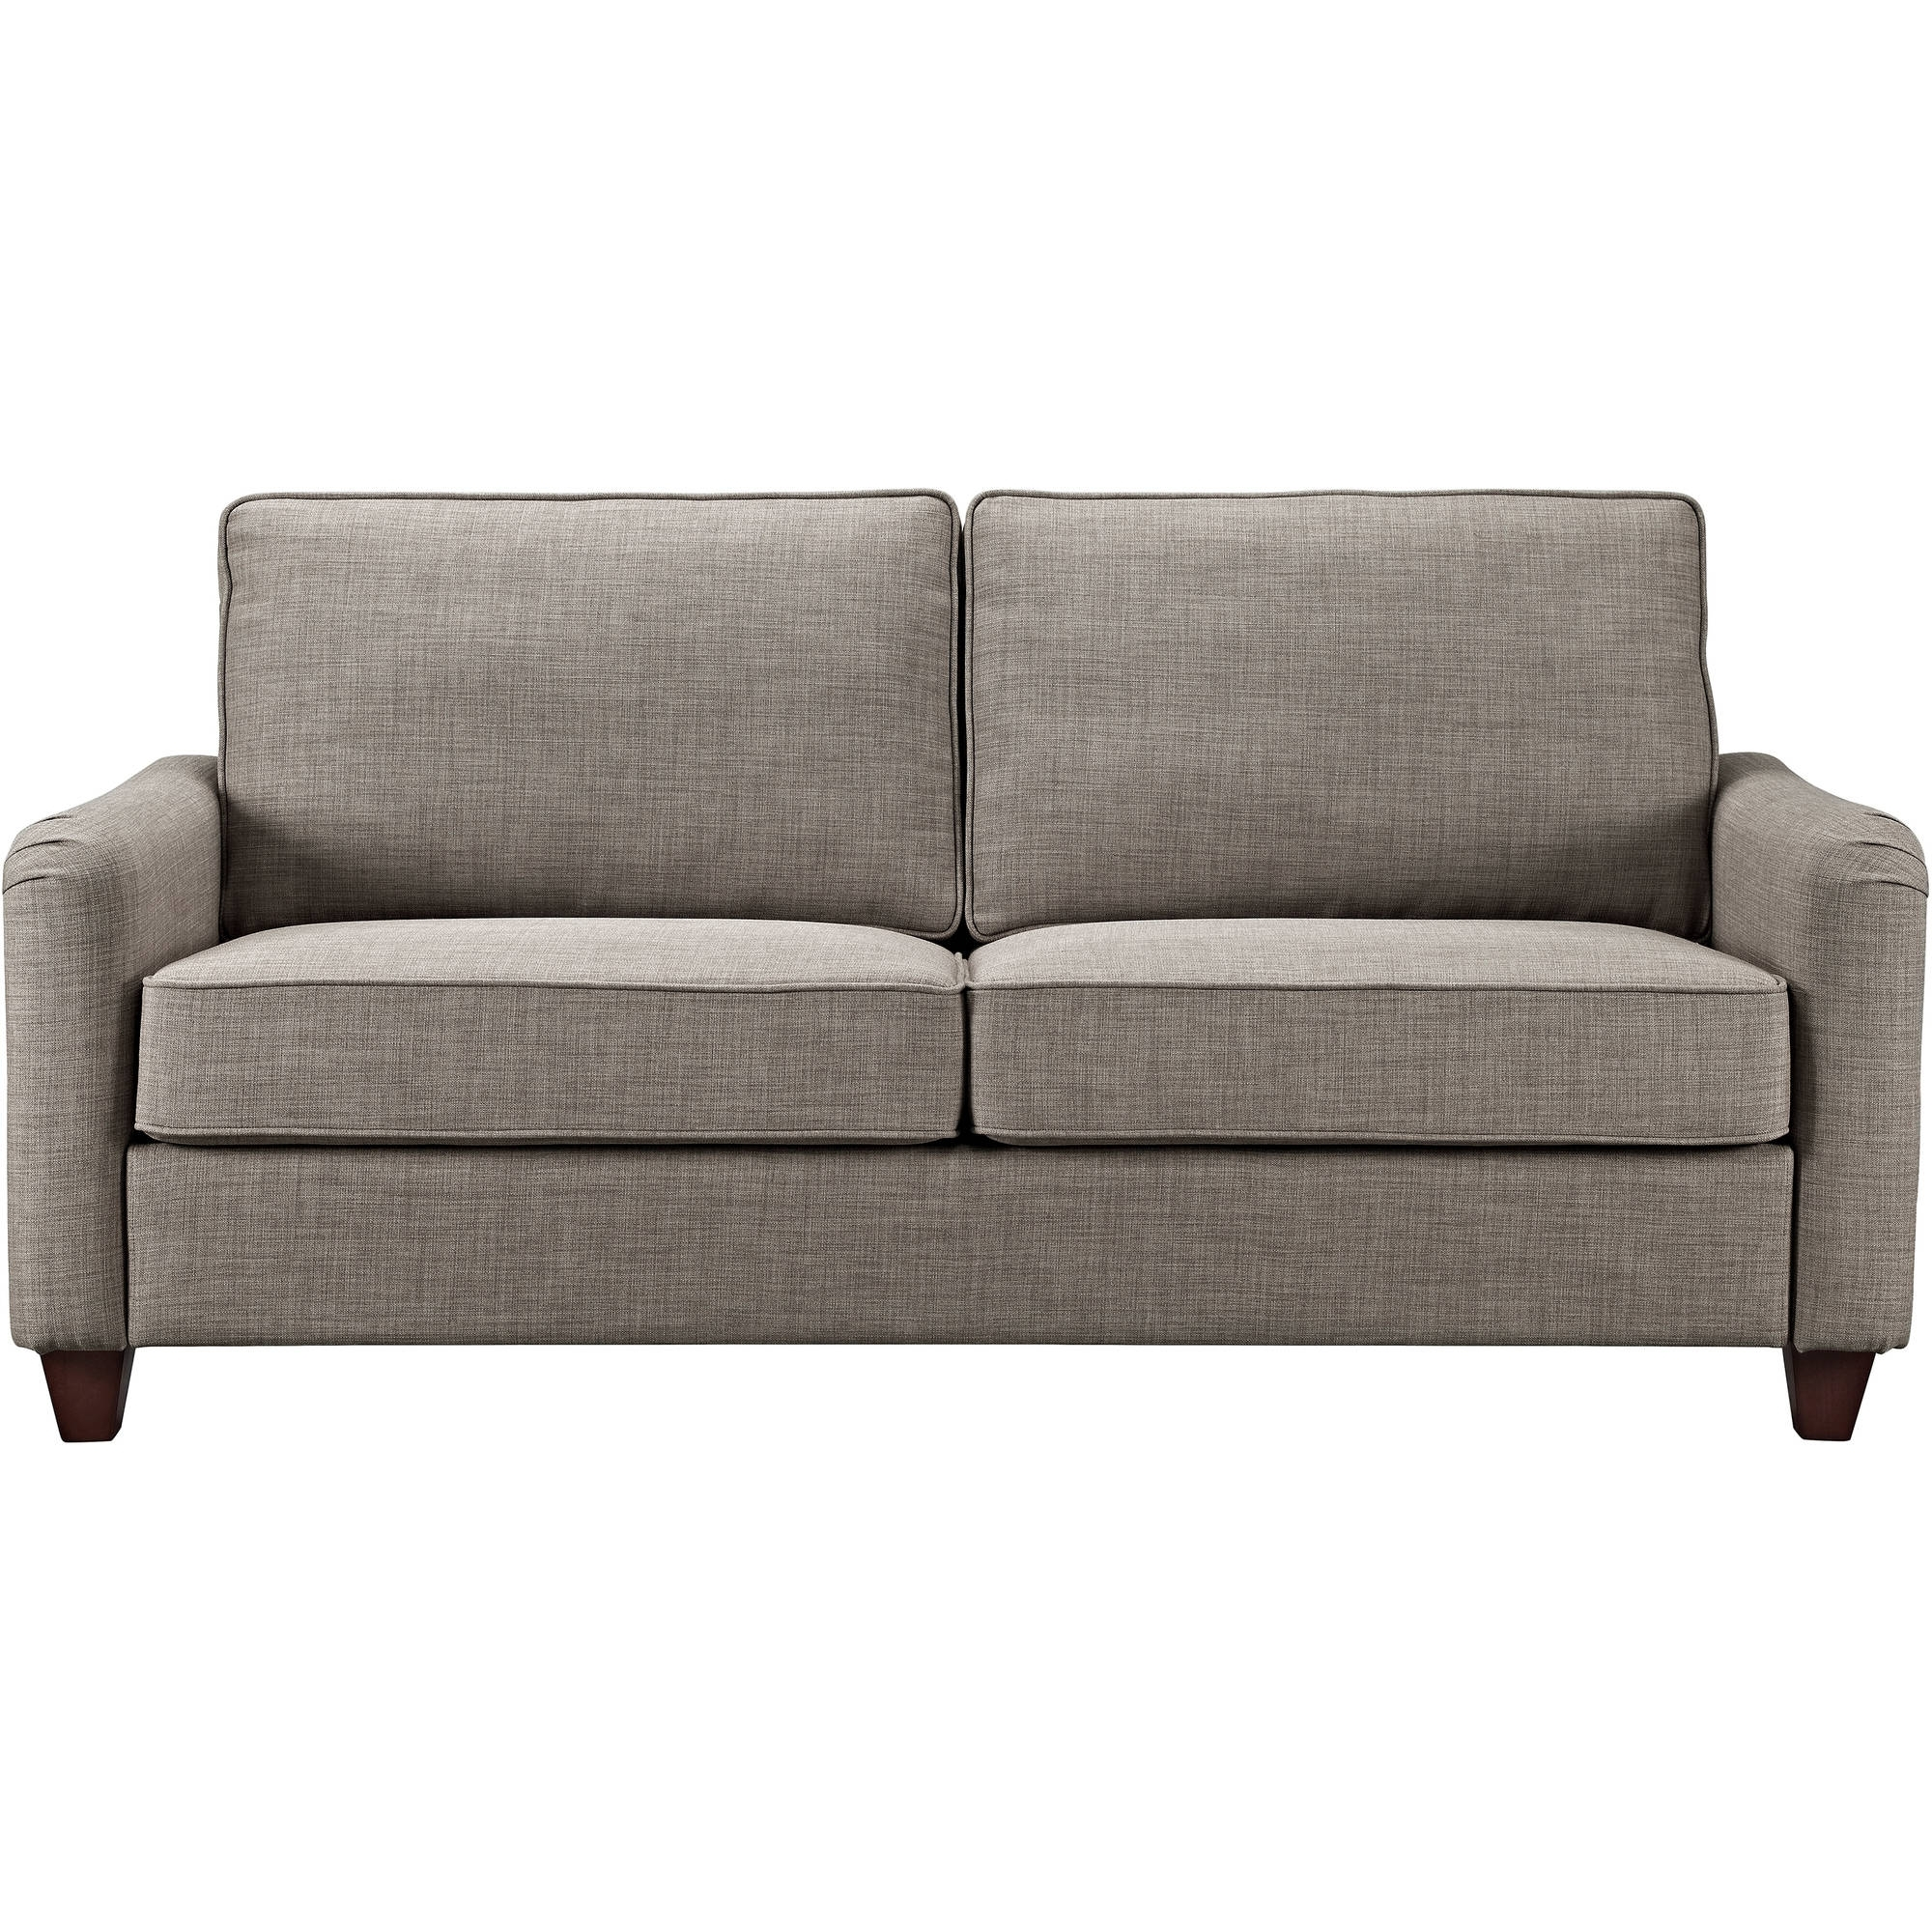 Sectional Sofas At Walmart Inside Famous Sofas & Couches – Walmart (View 12 of 20)